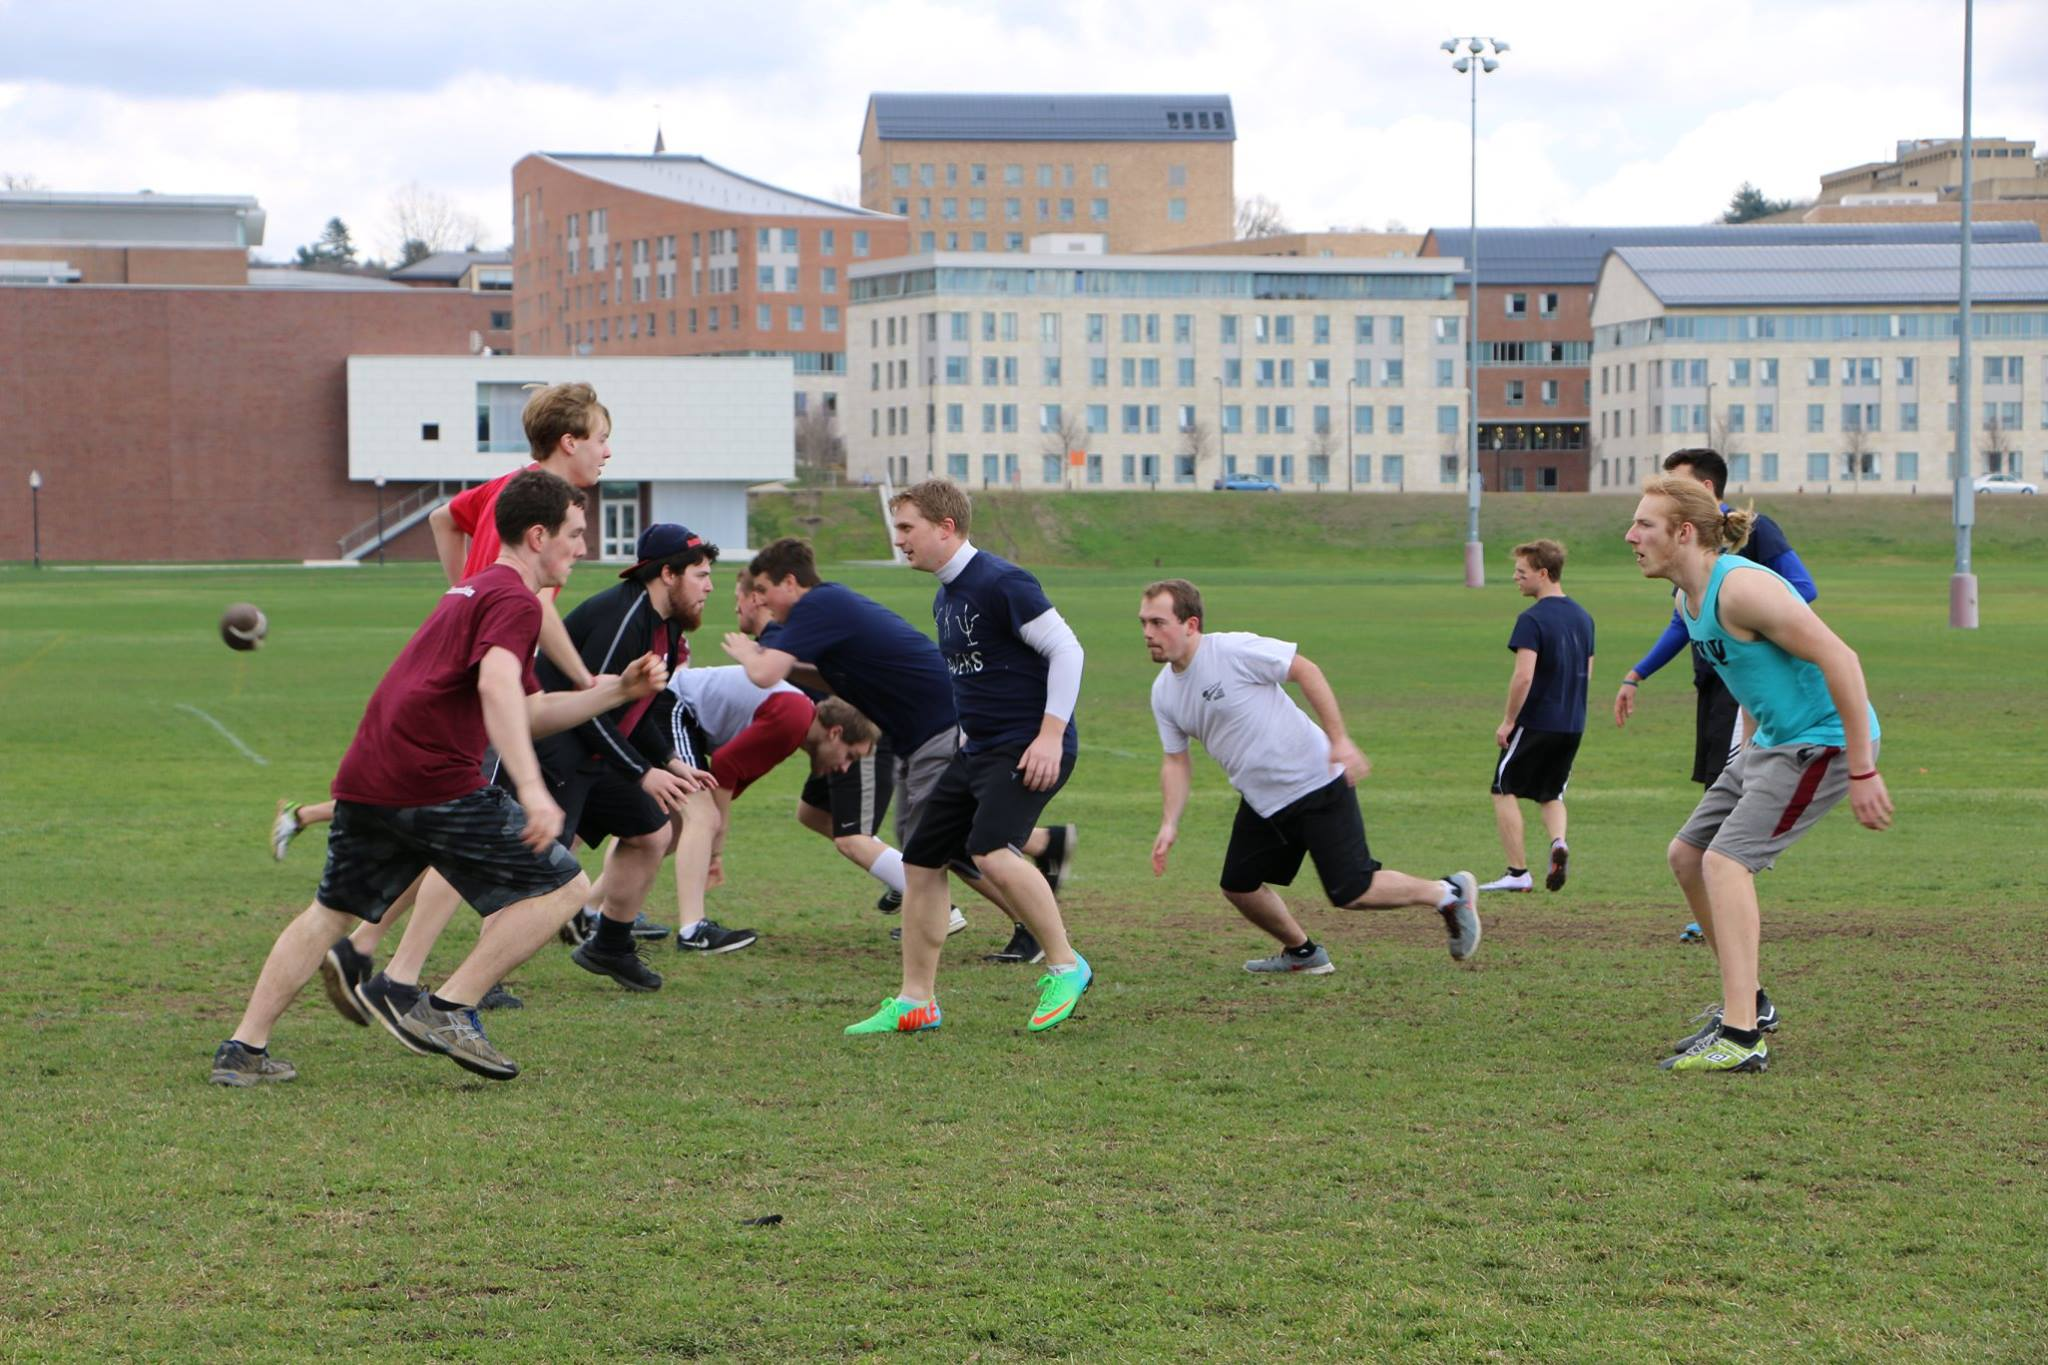 ΦΜΑ vs. ΚΚΨ Football Game - April 2, 2016